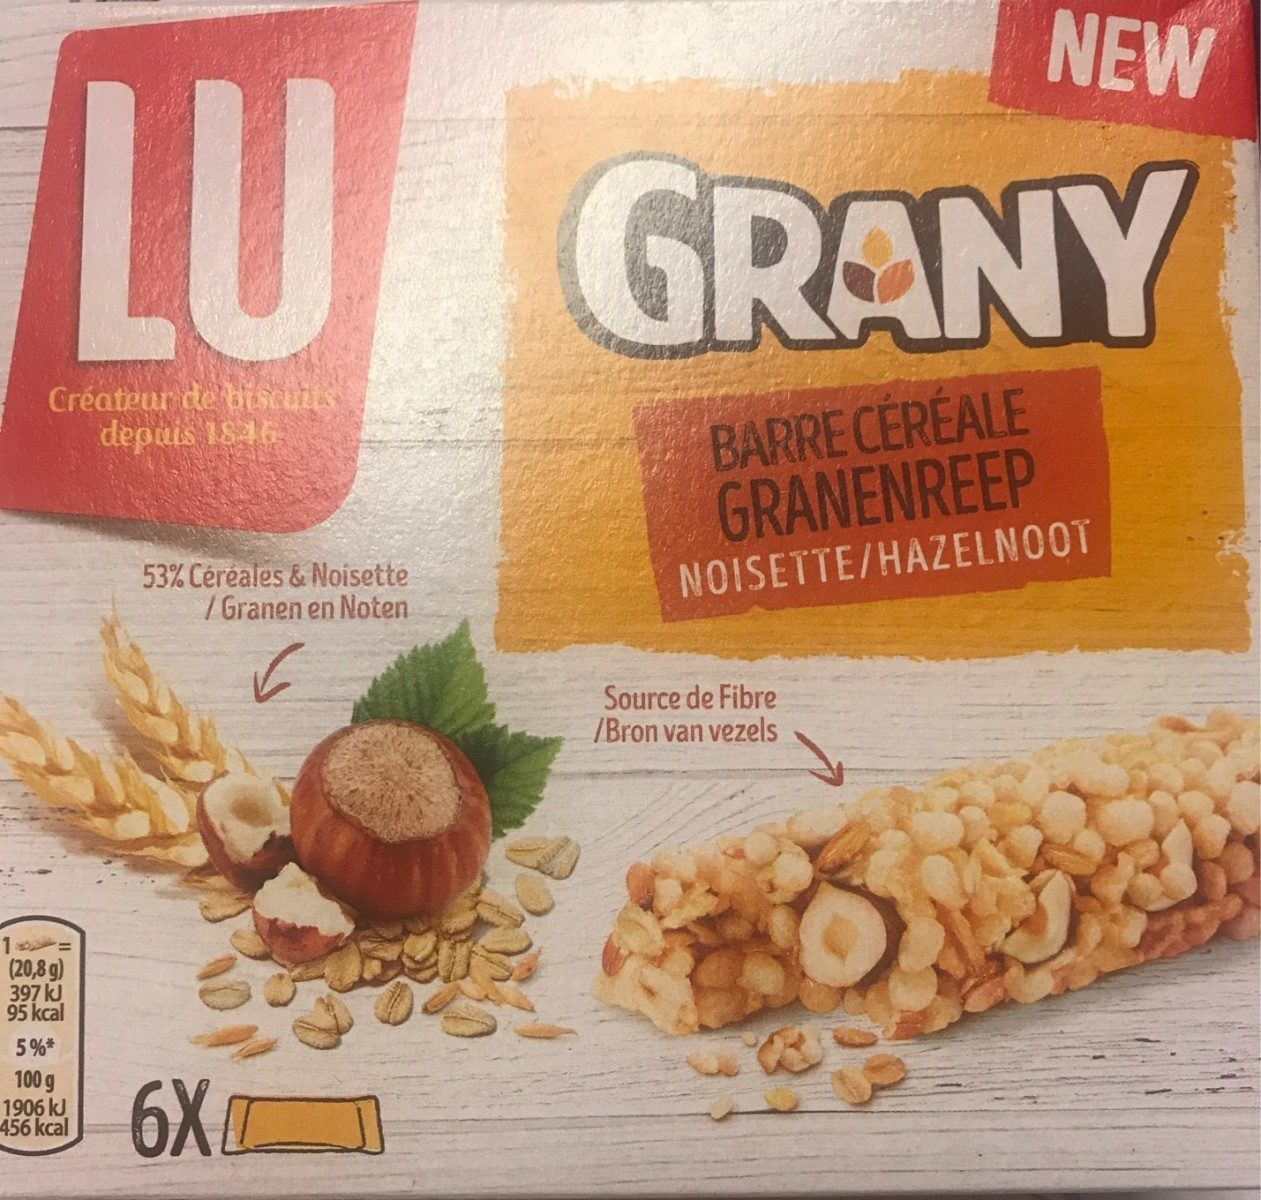 Grany barre cereale noisette - Product